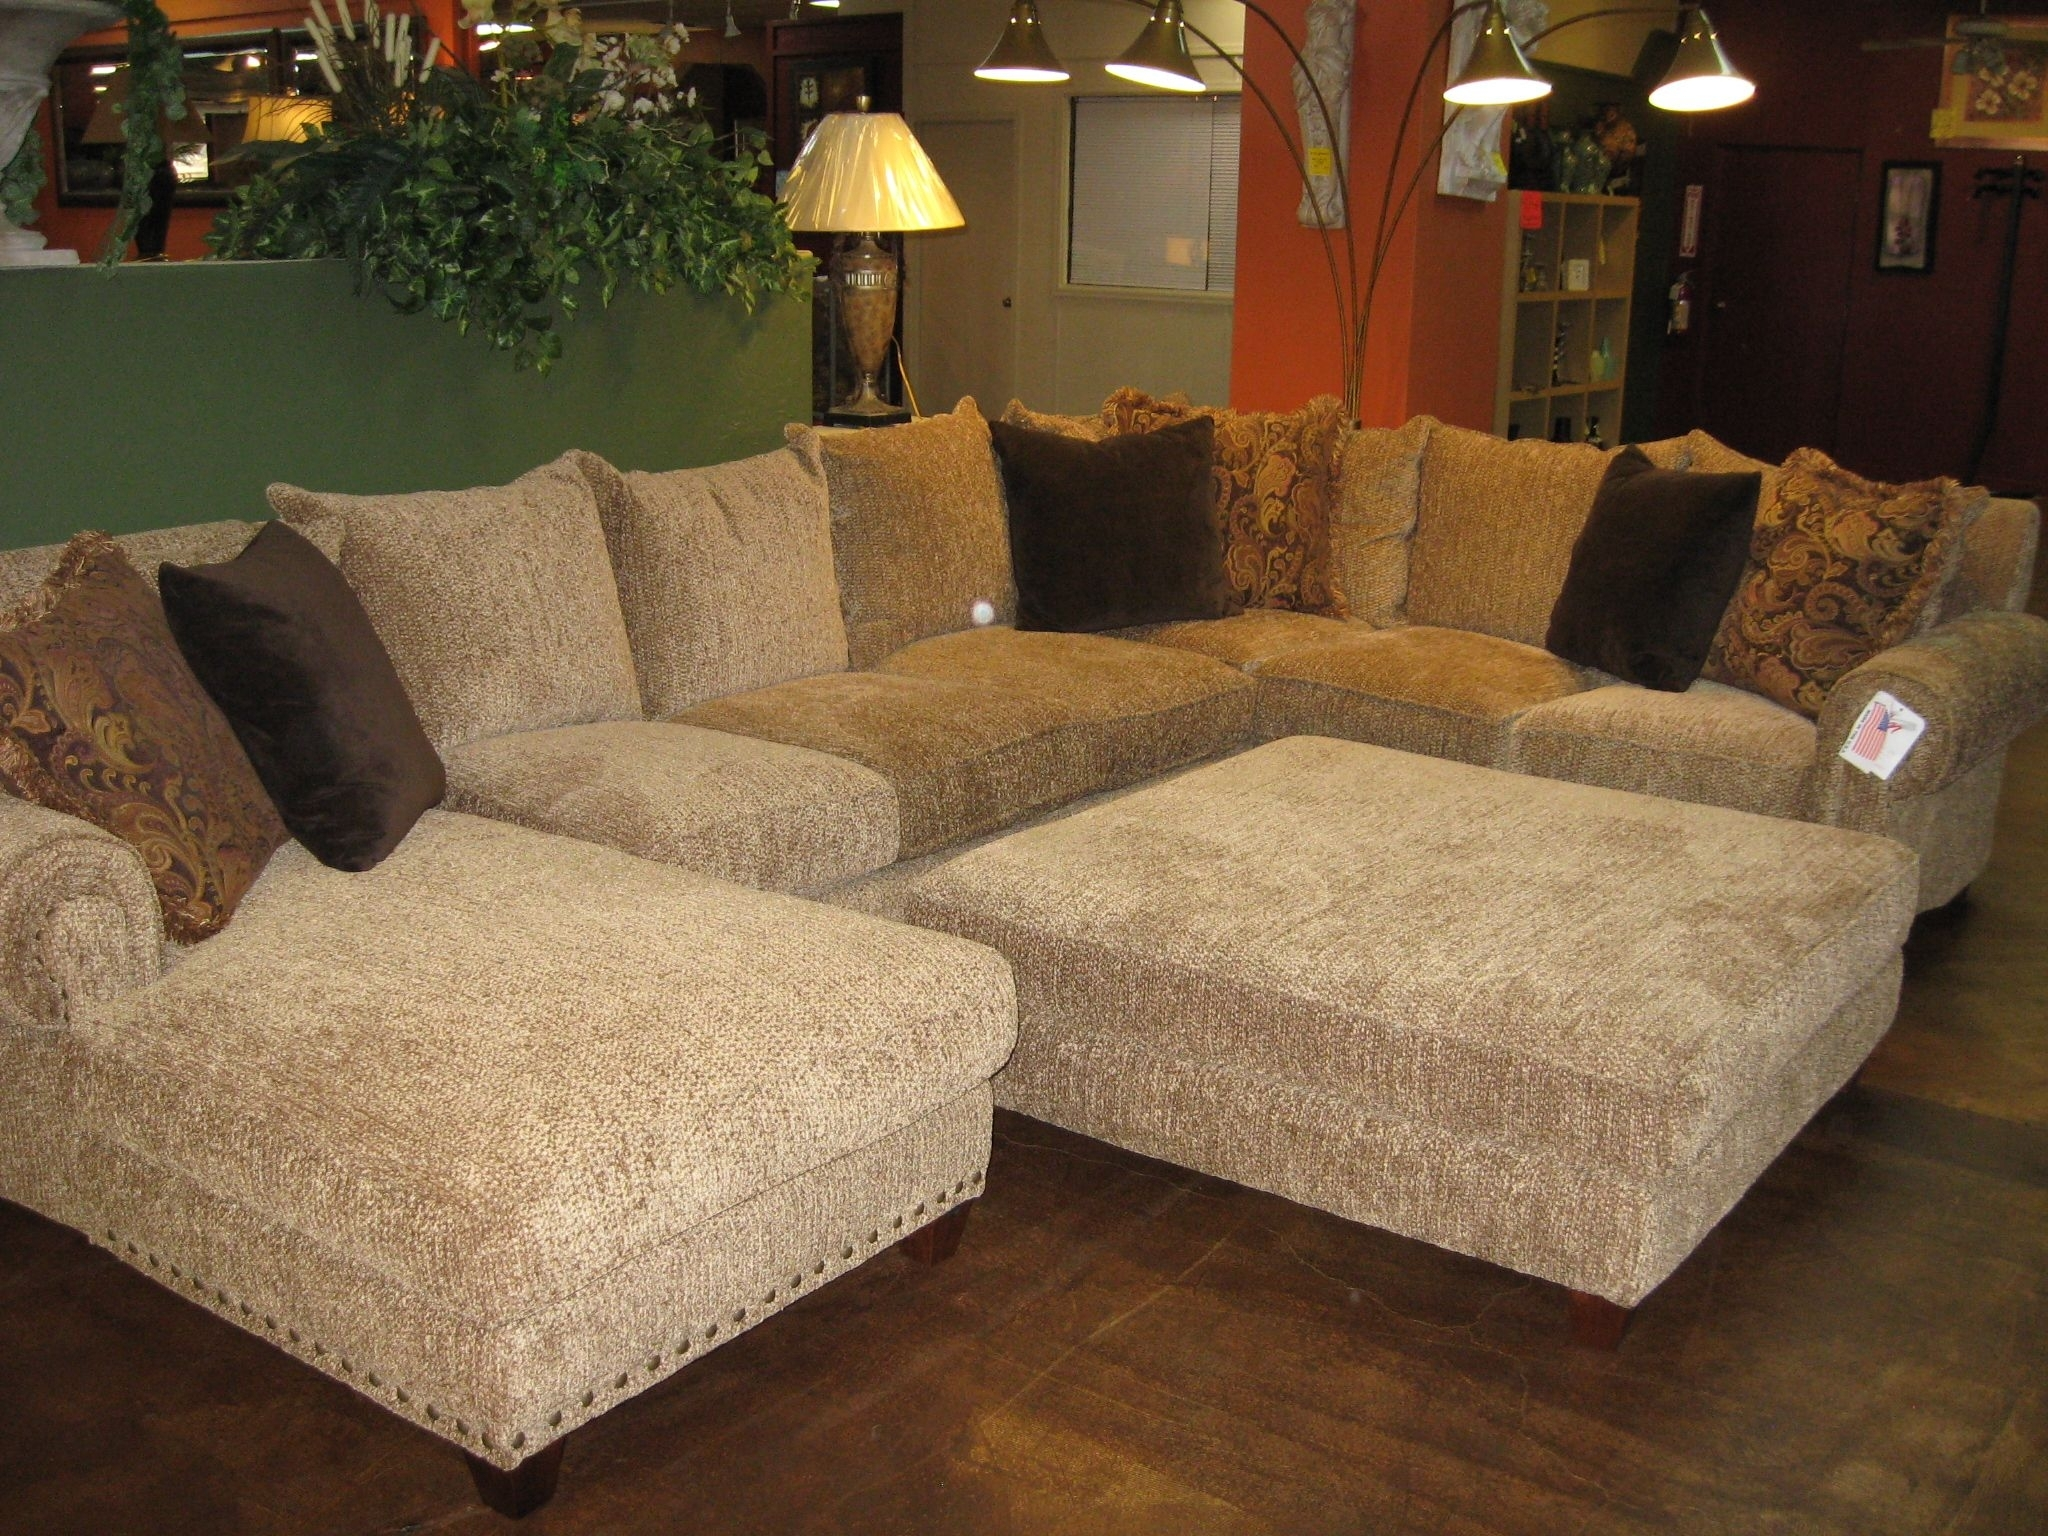 Robert Michael Rocky Mountain Sectional | Rocky Mountain In Mammoth In Sectionals With Oversized Ottoman (Image 5 of 10)